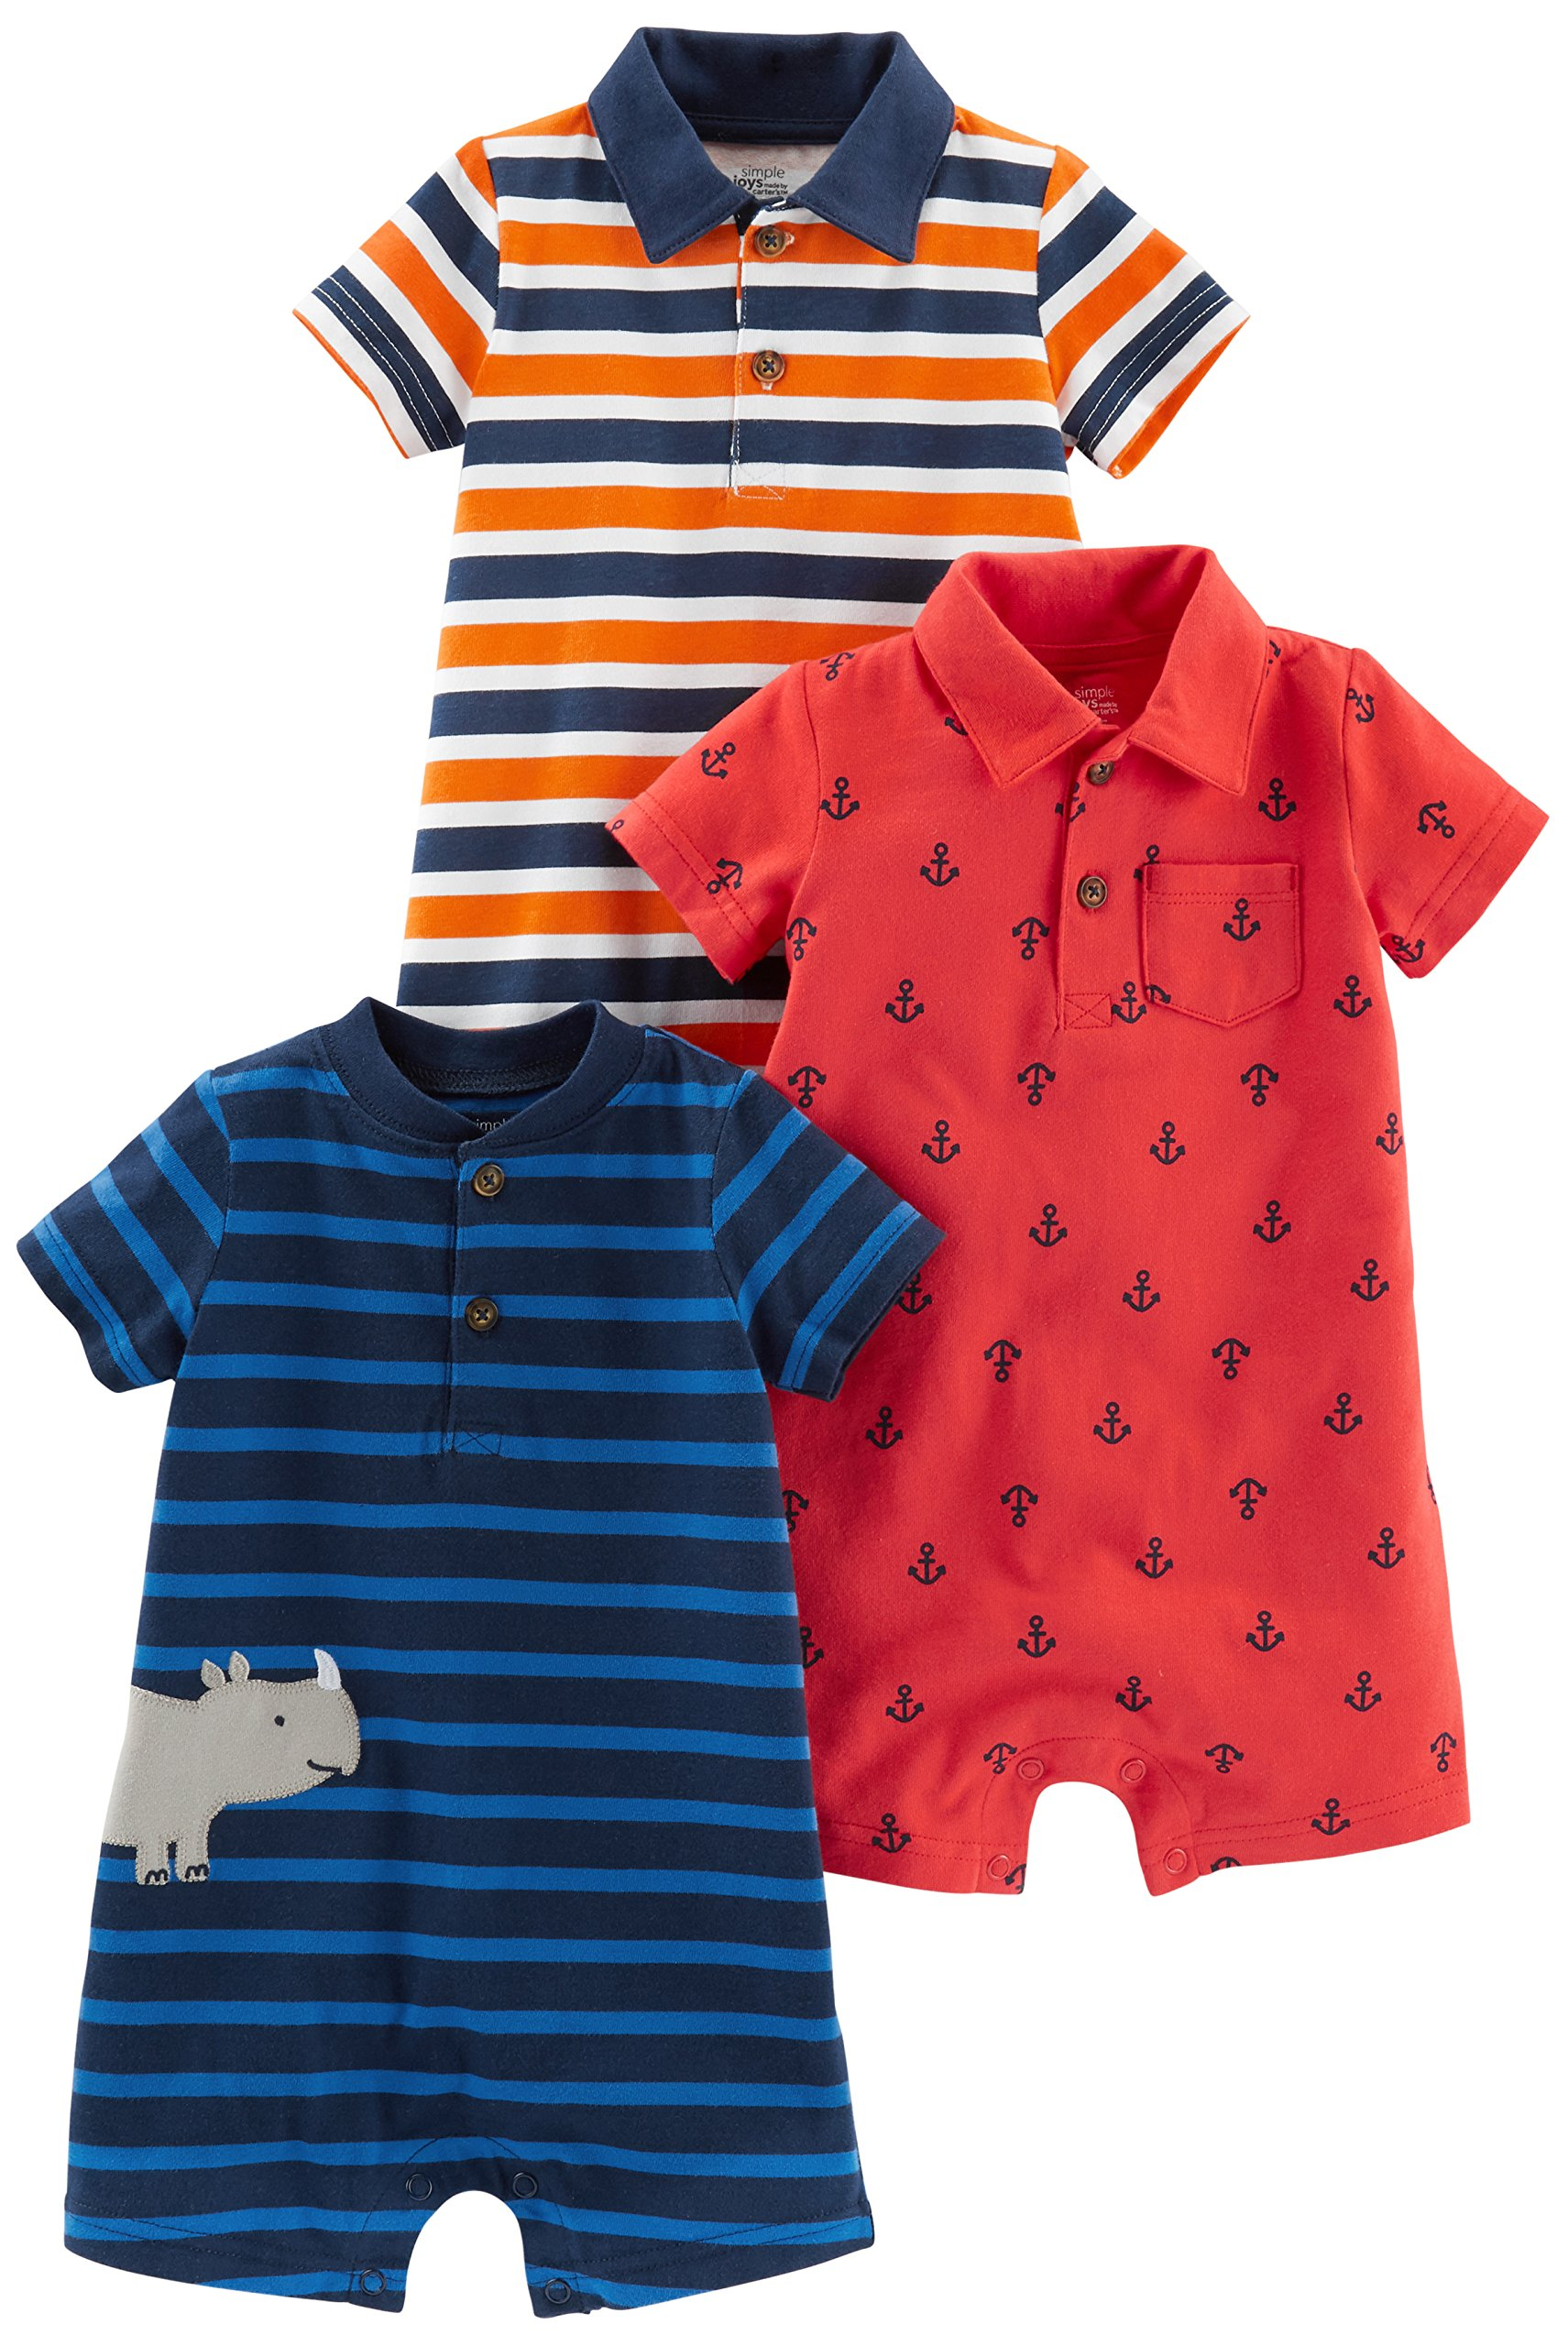 Simple Joys by Carter's Baby Boys' 3-Pack Rompers, Orange Blue Stripe/Navy Stripe/Red Anchors, 12 Months